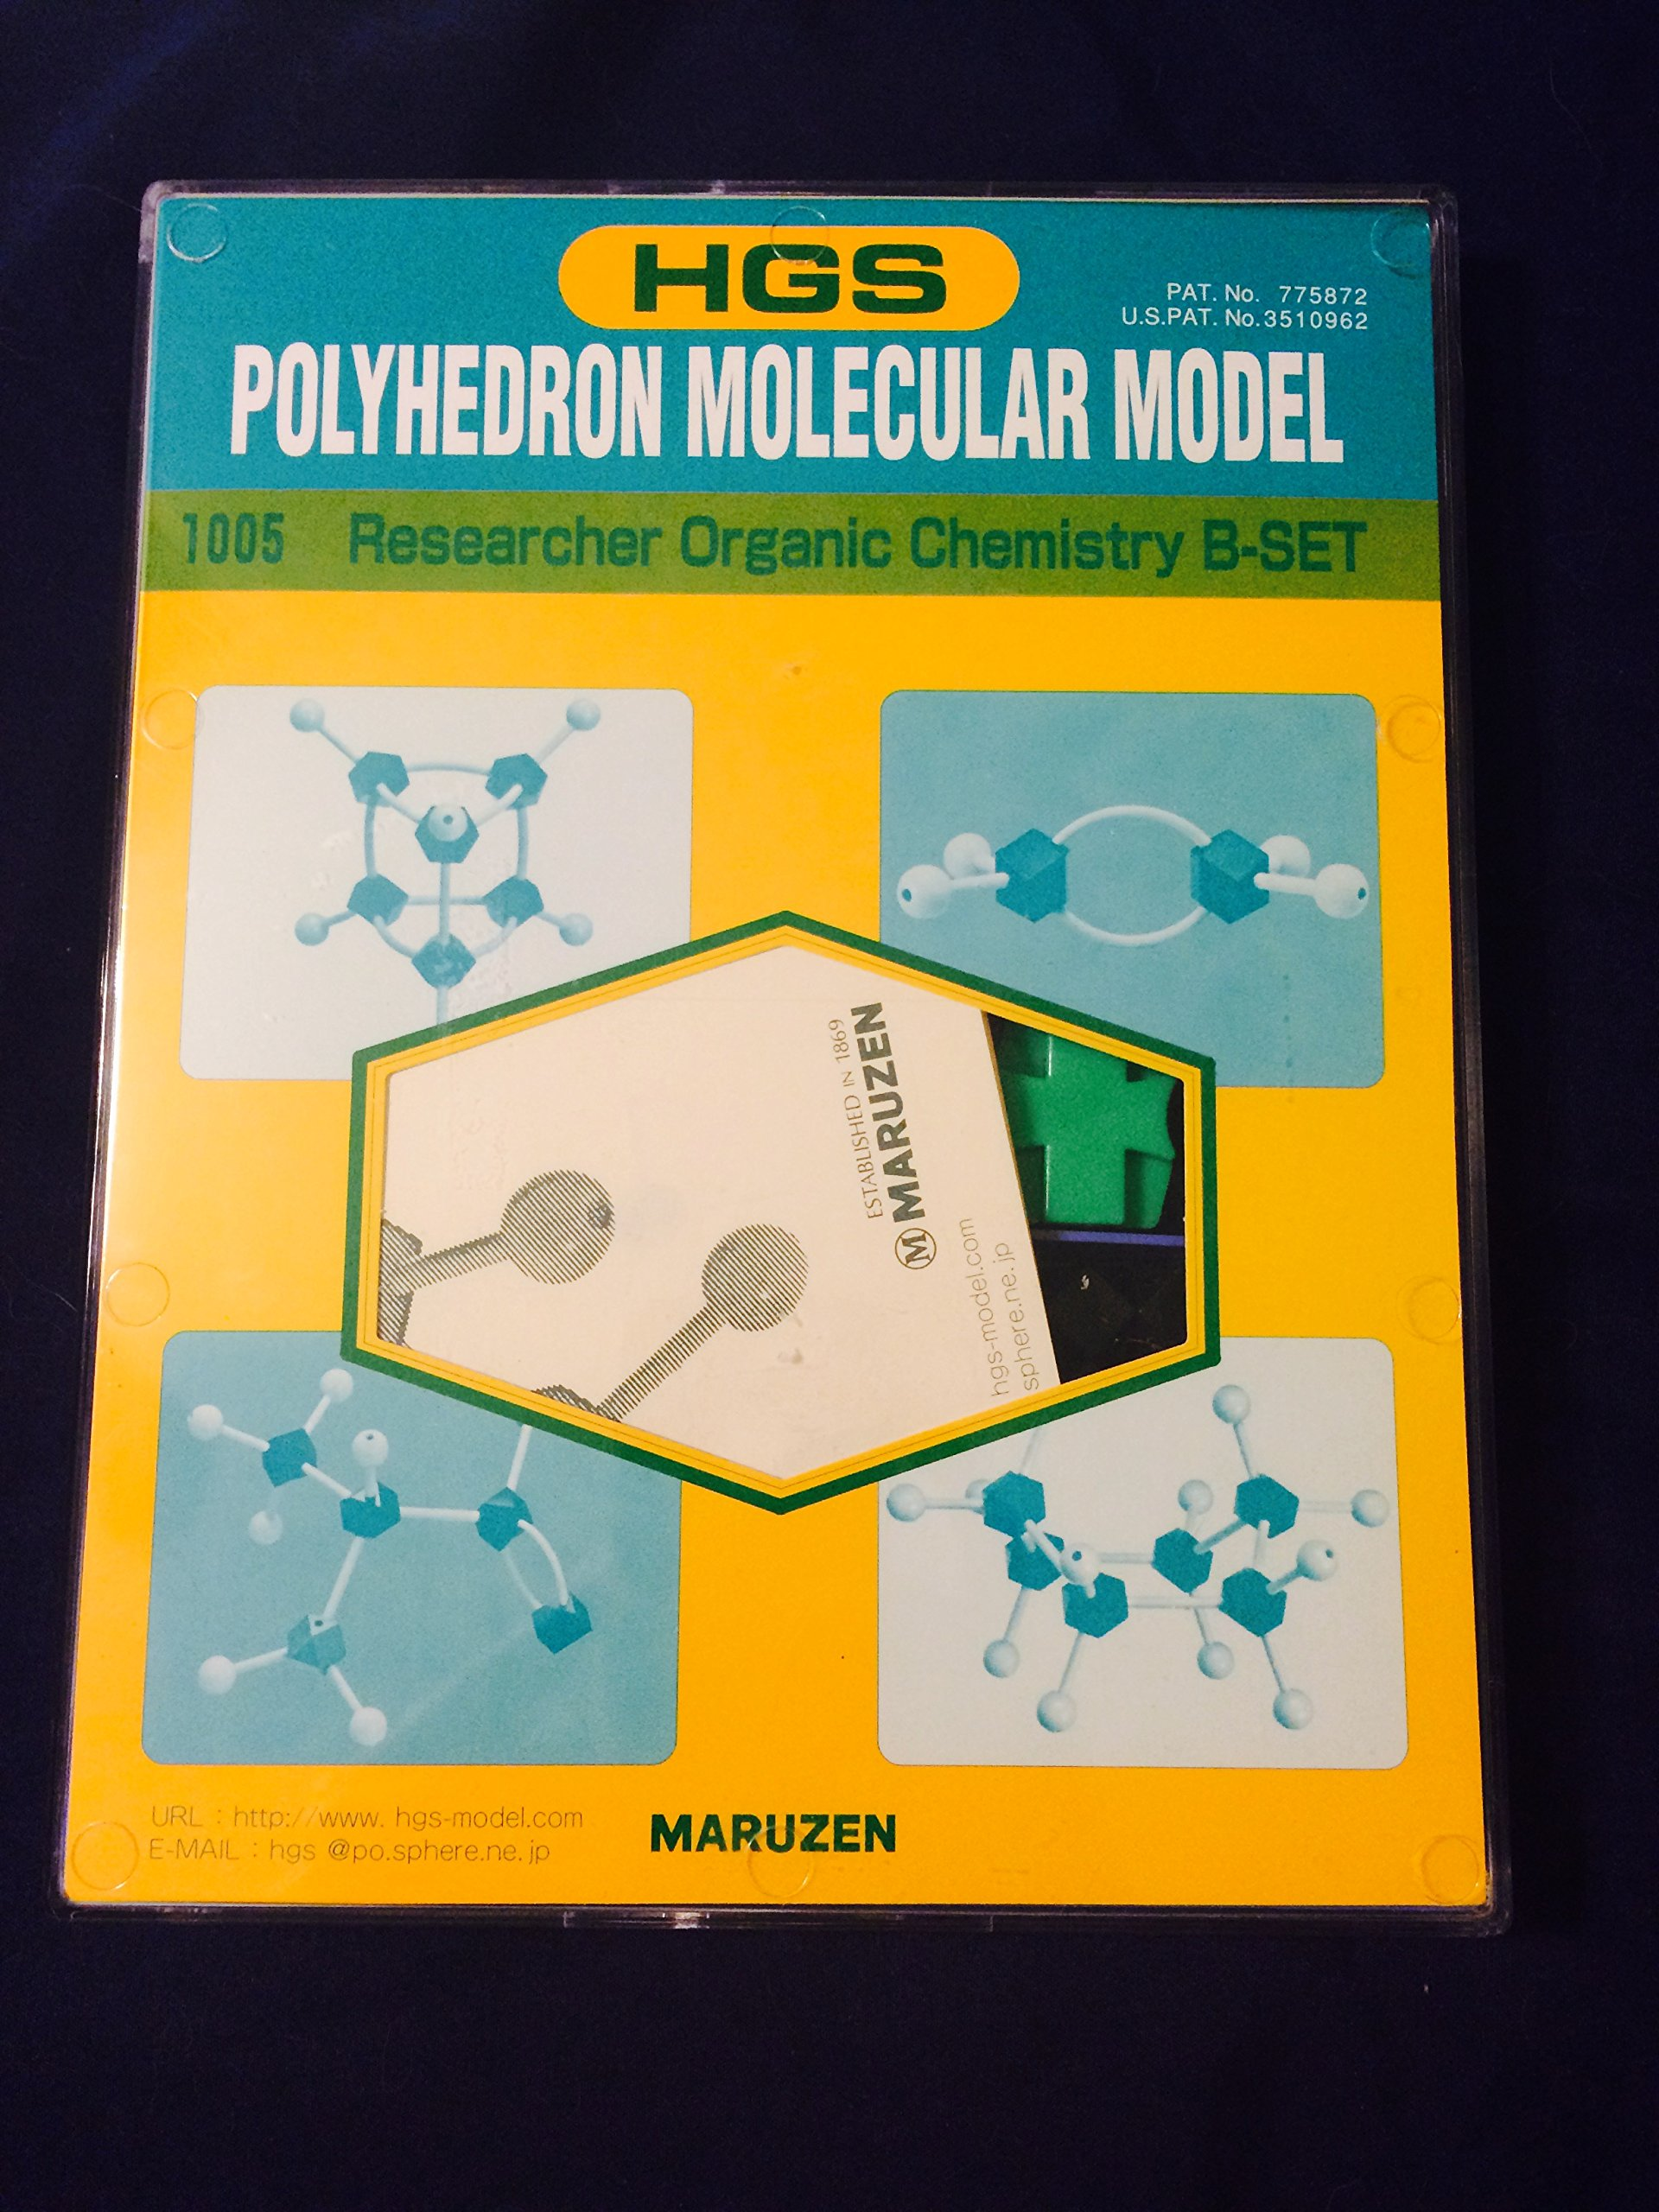 1005/ Researcher Organic Chemistry B-set (HGS Polyhedron Molecular Model):  HGS Maruzen: Amazon.com: Books